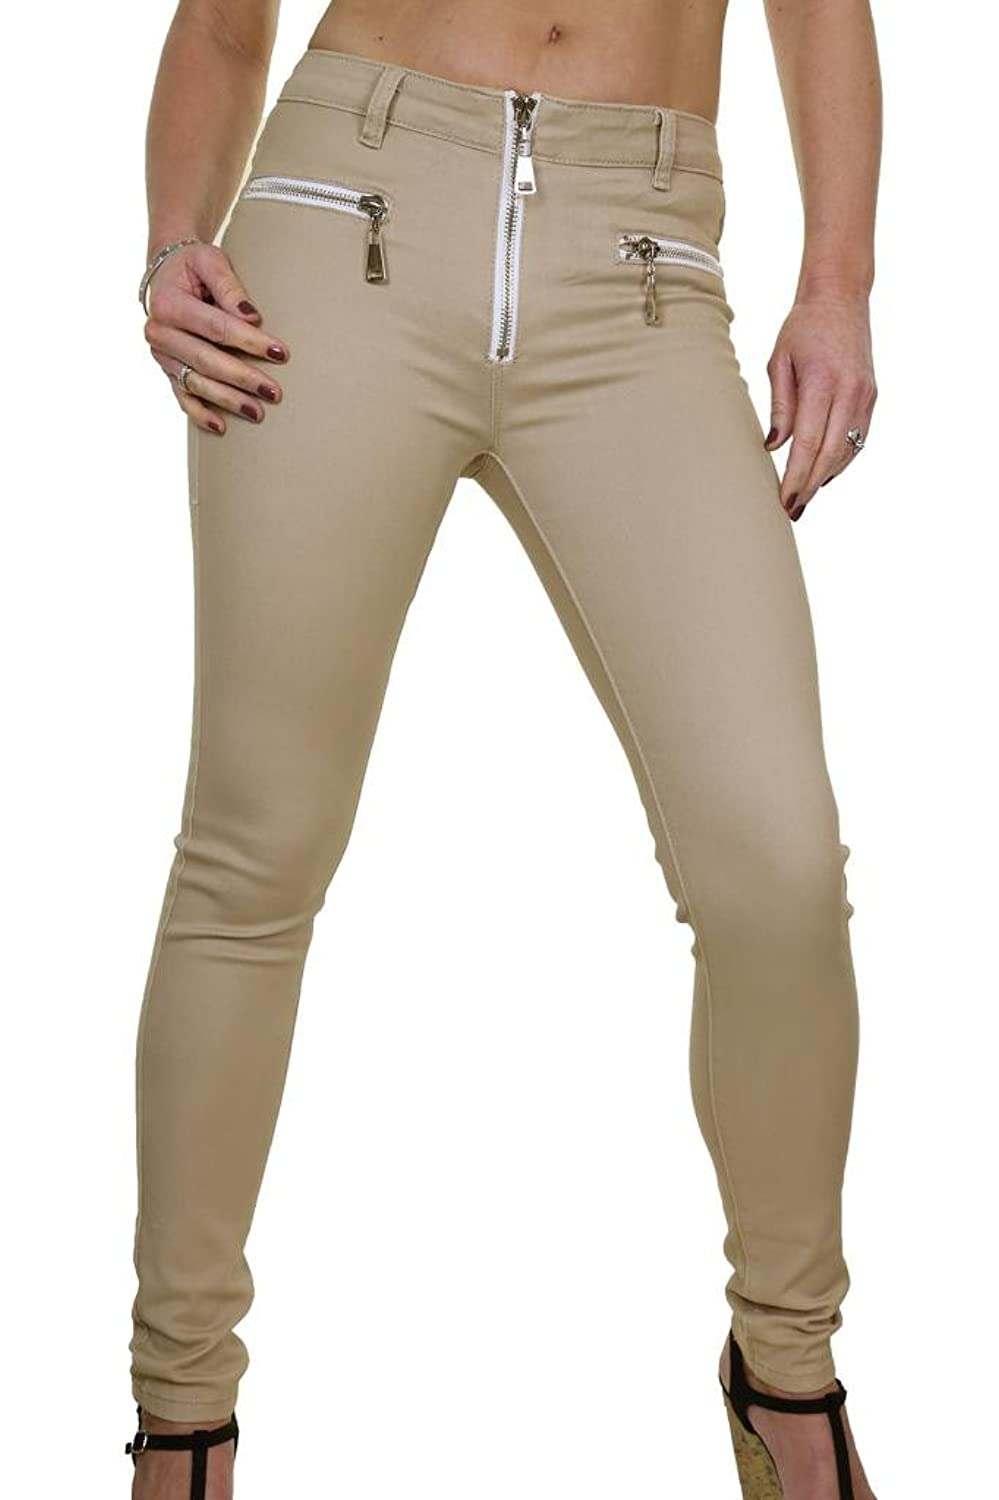 ICE (1471-1) Skinny Jeans Low Rise Soft Touch Denim Chunky Zips Beige